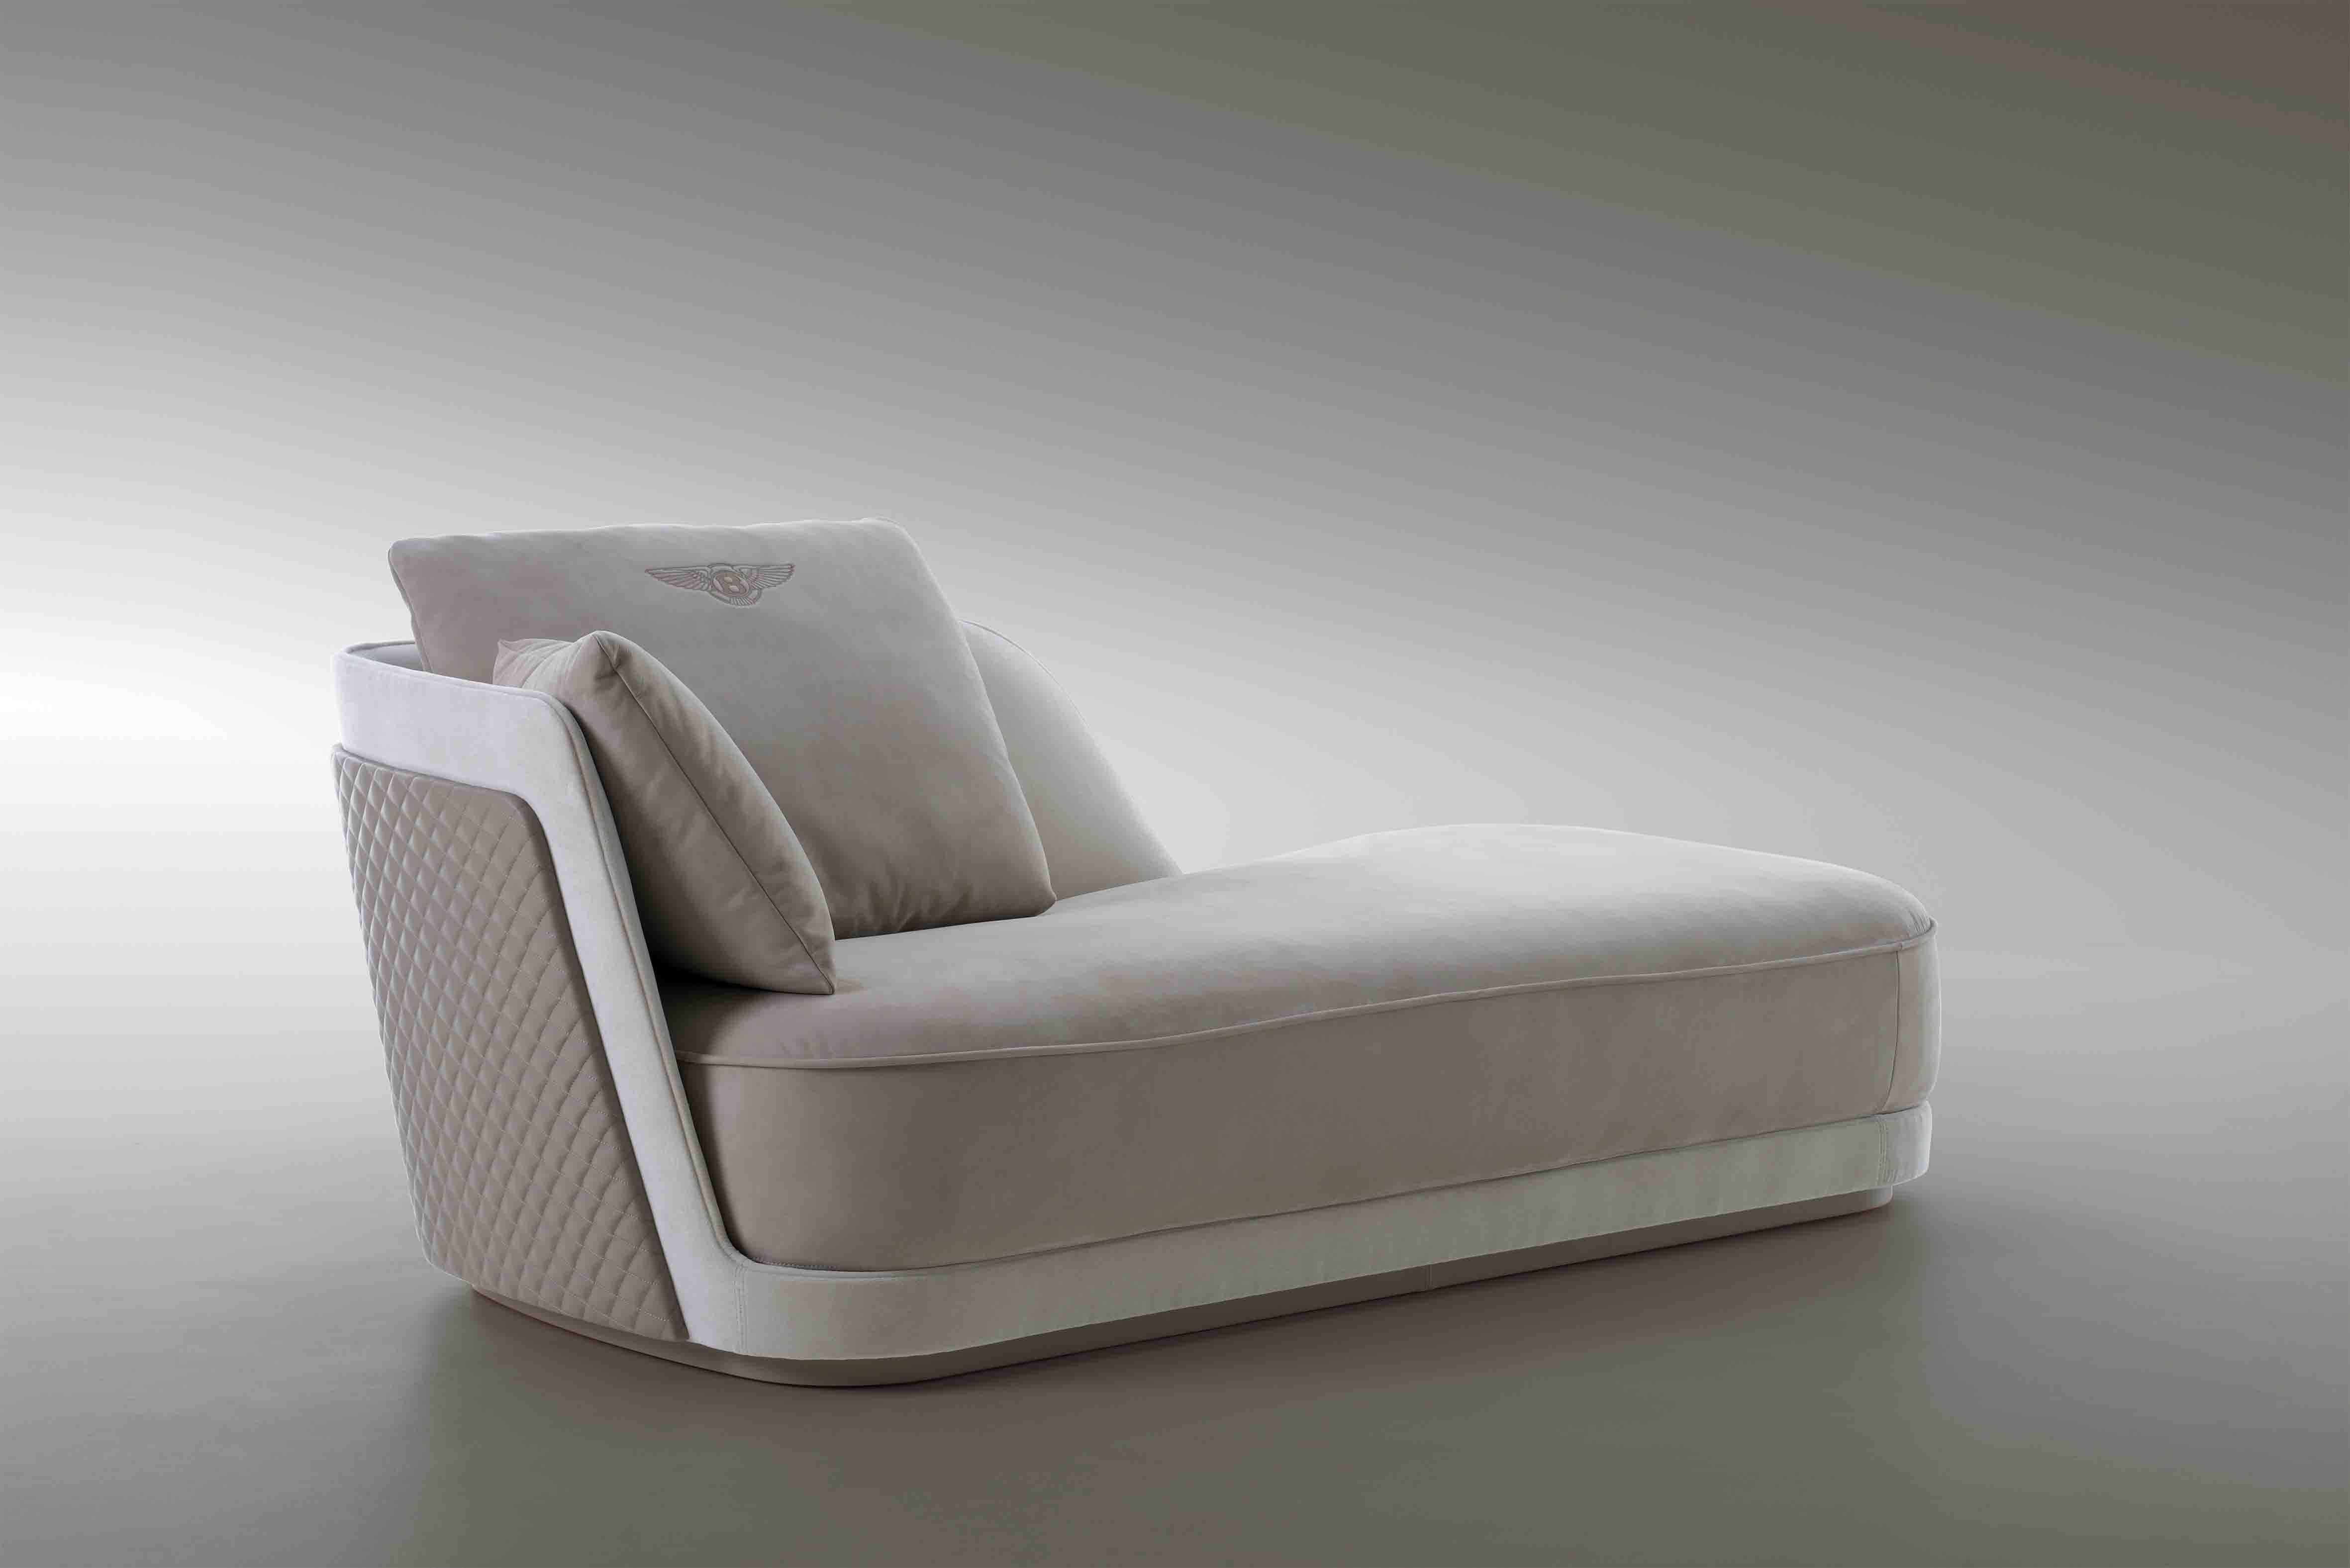 A Few New Items From Bentley Furniture Were On Display During The Art Basel Miami Fair Chairs Chaise Longues And Sideboard